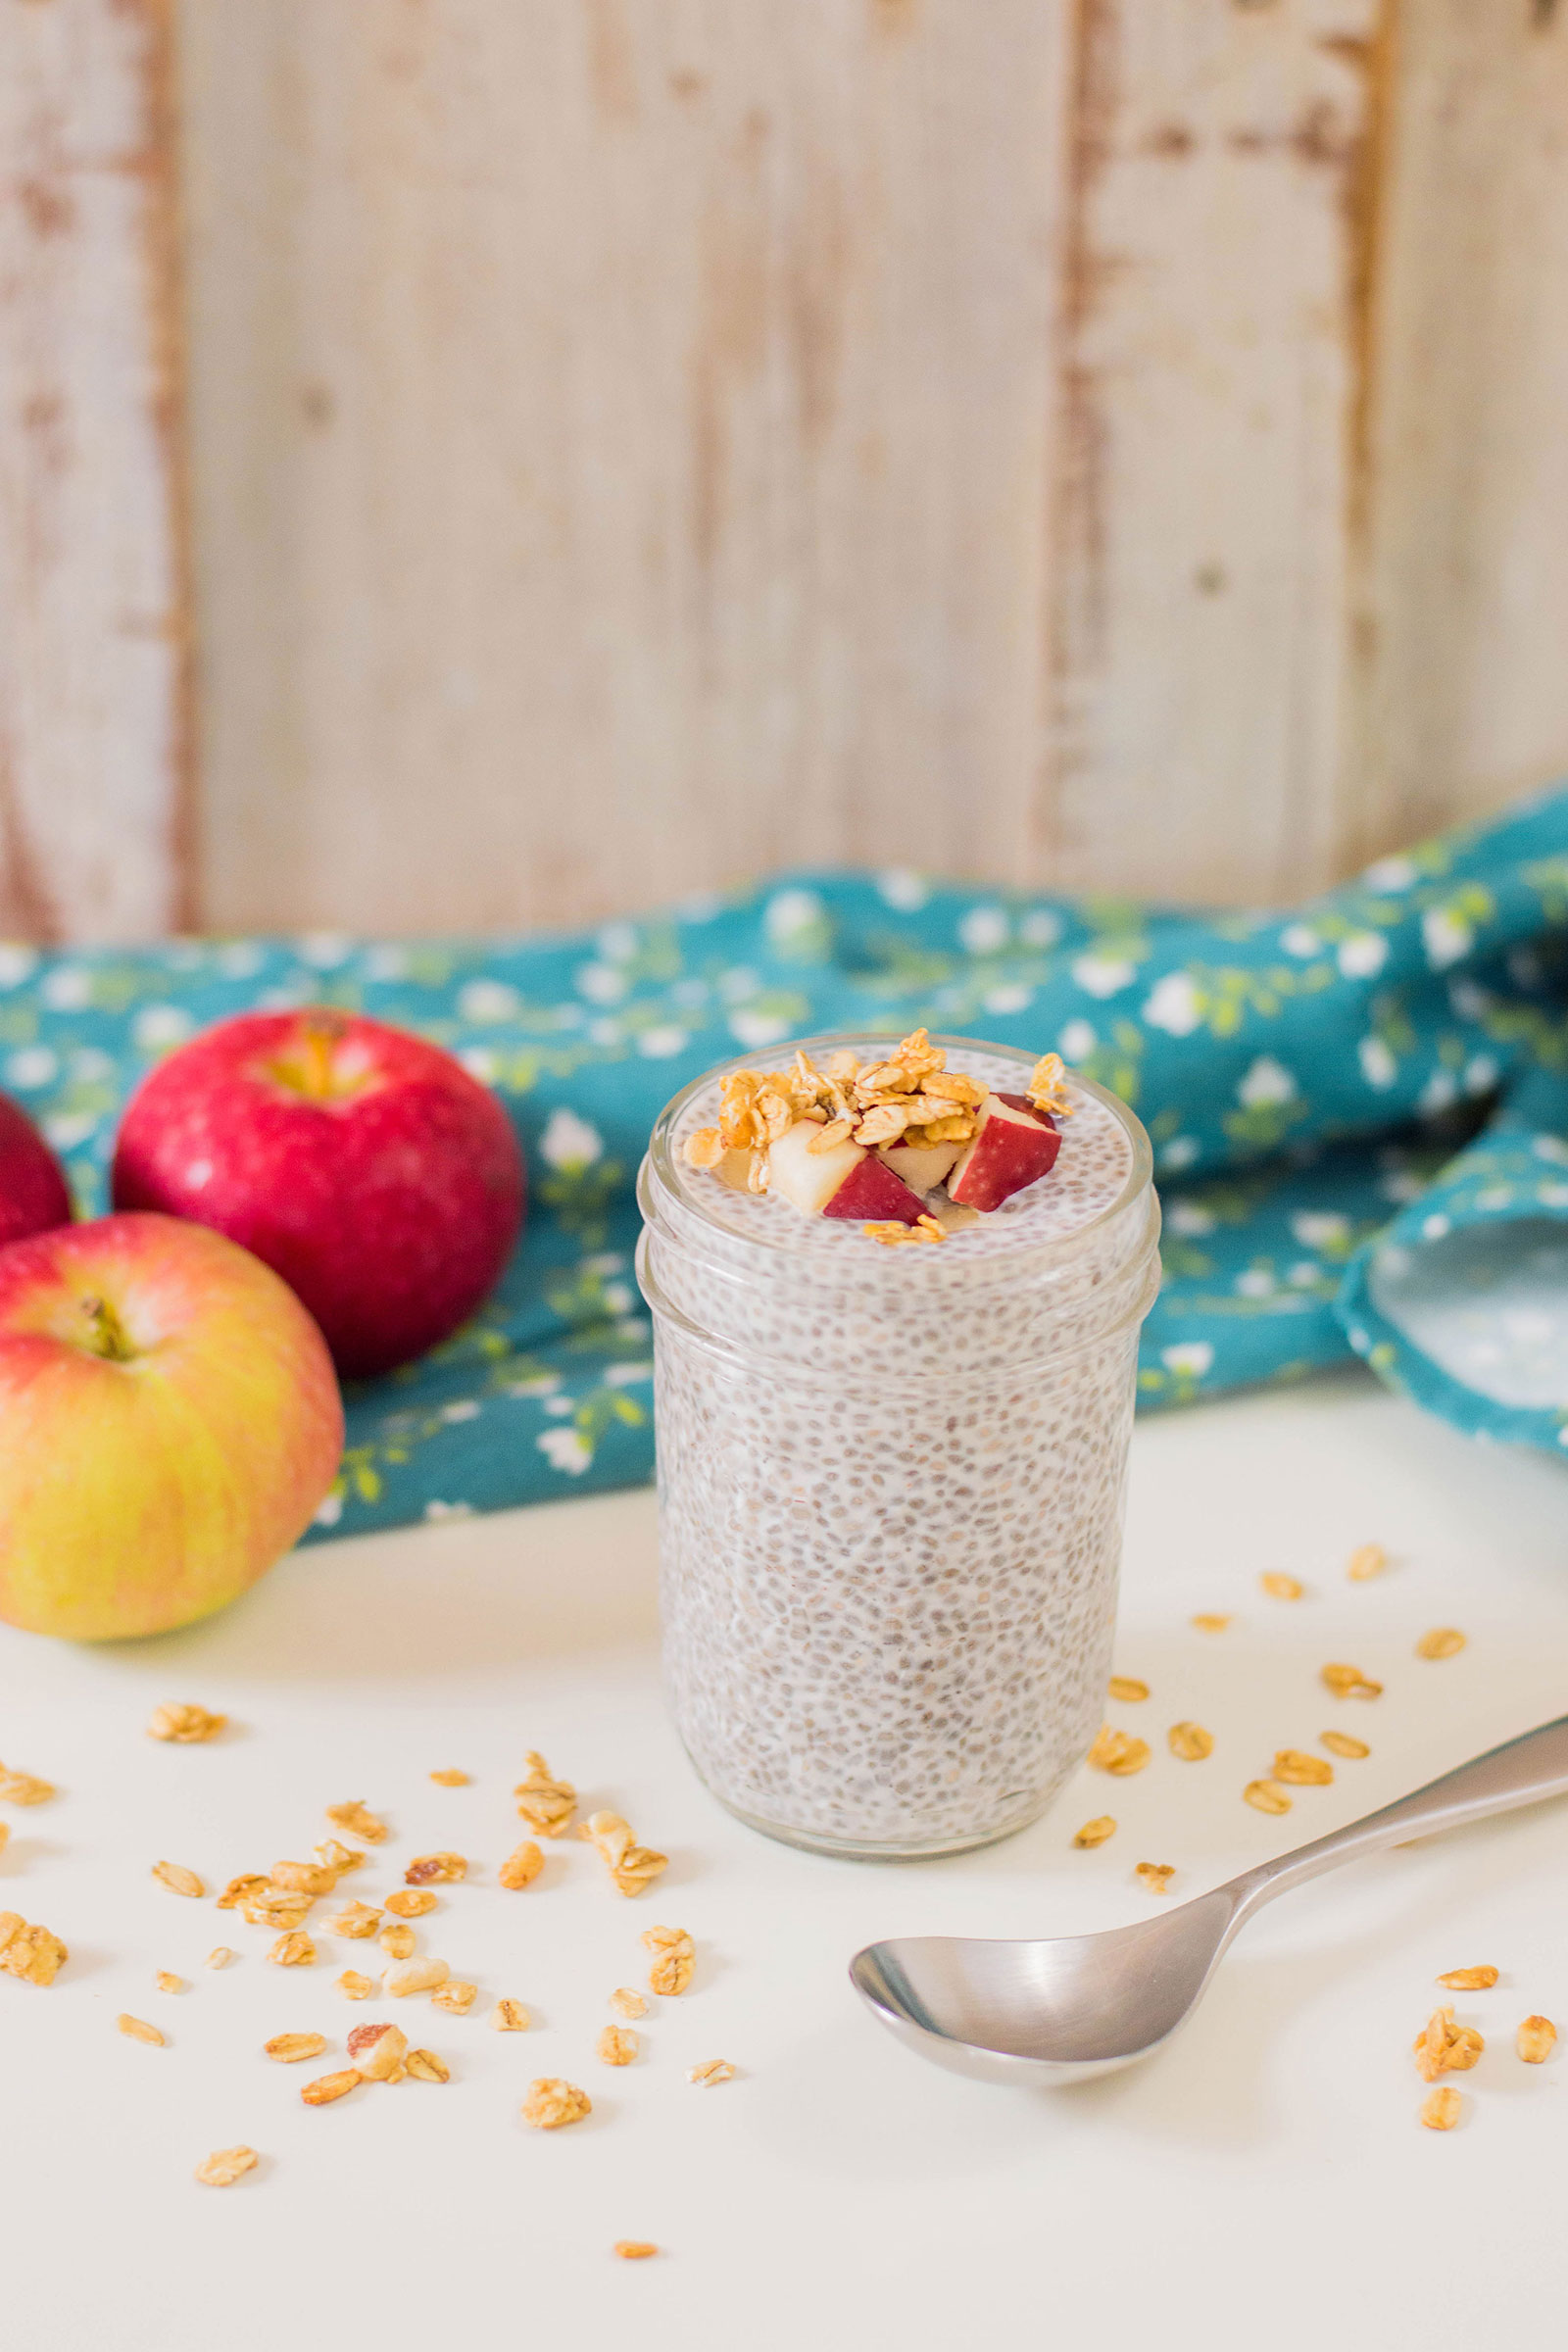 Apple Cinnamon Chia Pudding